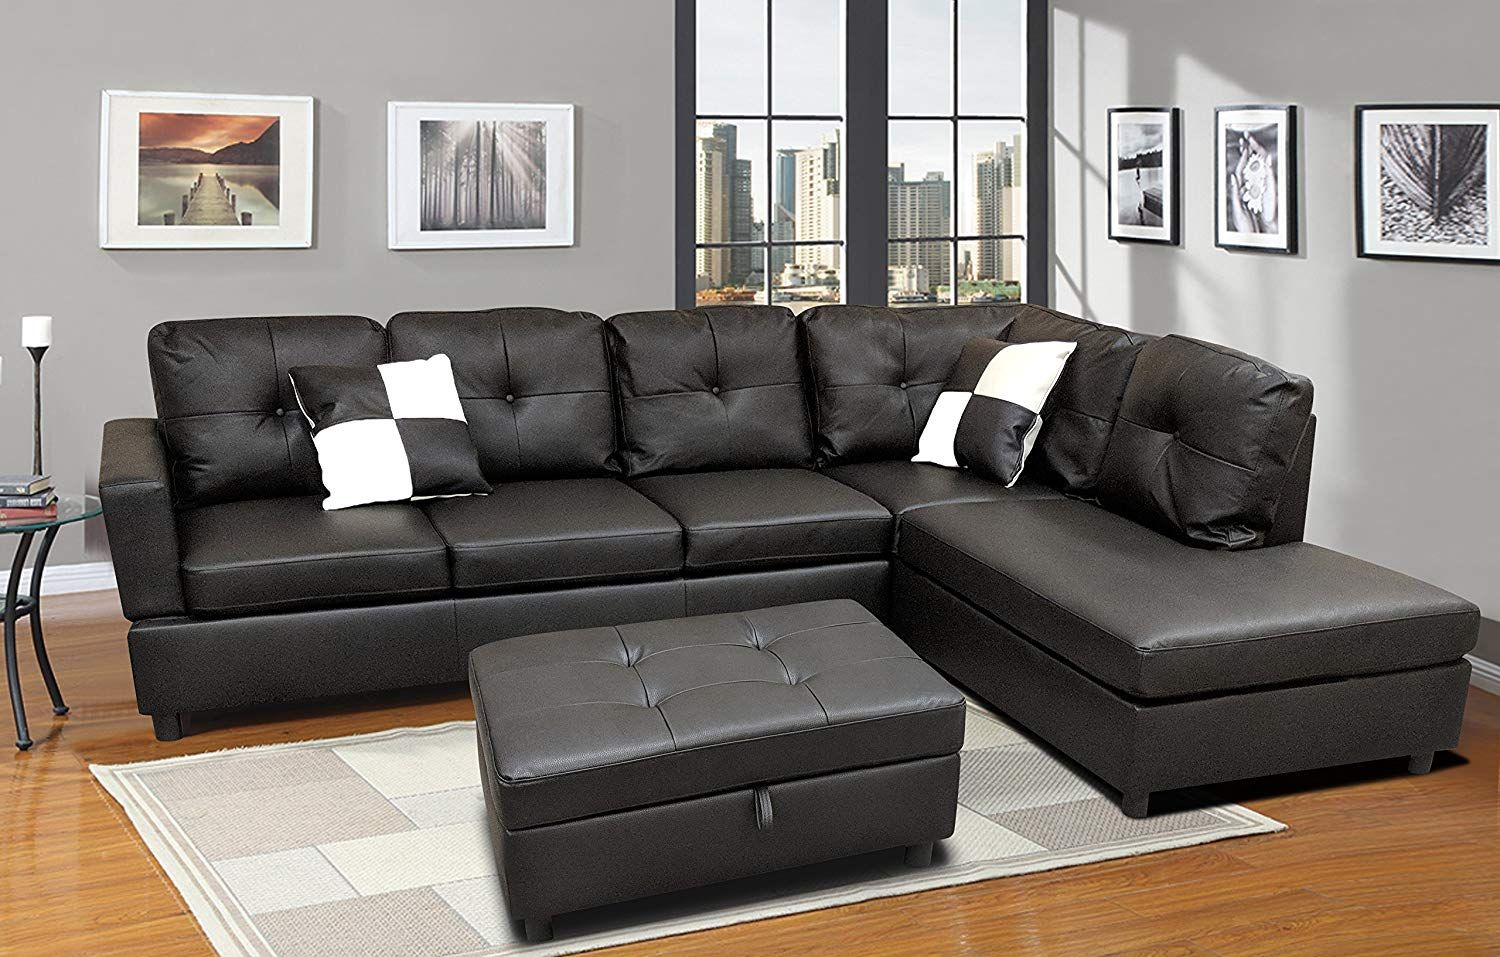 15 Cheap Sectional Sofa that you must try | Sectional sofa ...